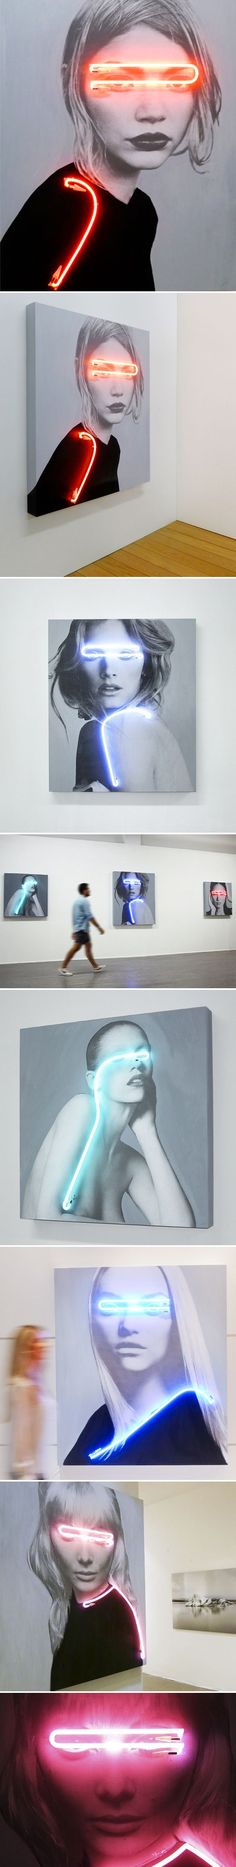 curated contemporary art  /// javier martin - http://centophobe.com/curated-contemporary-art-javier-martin/ -